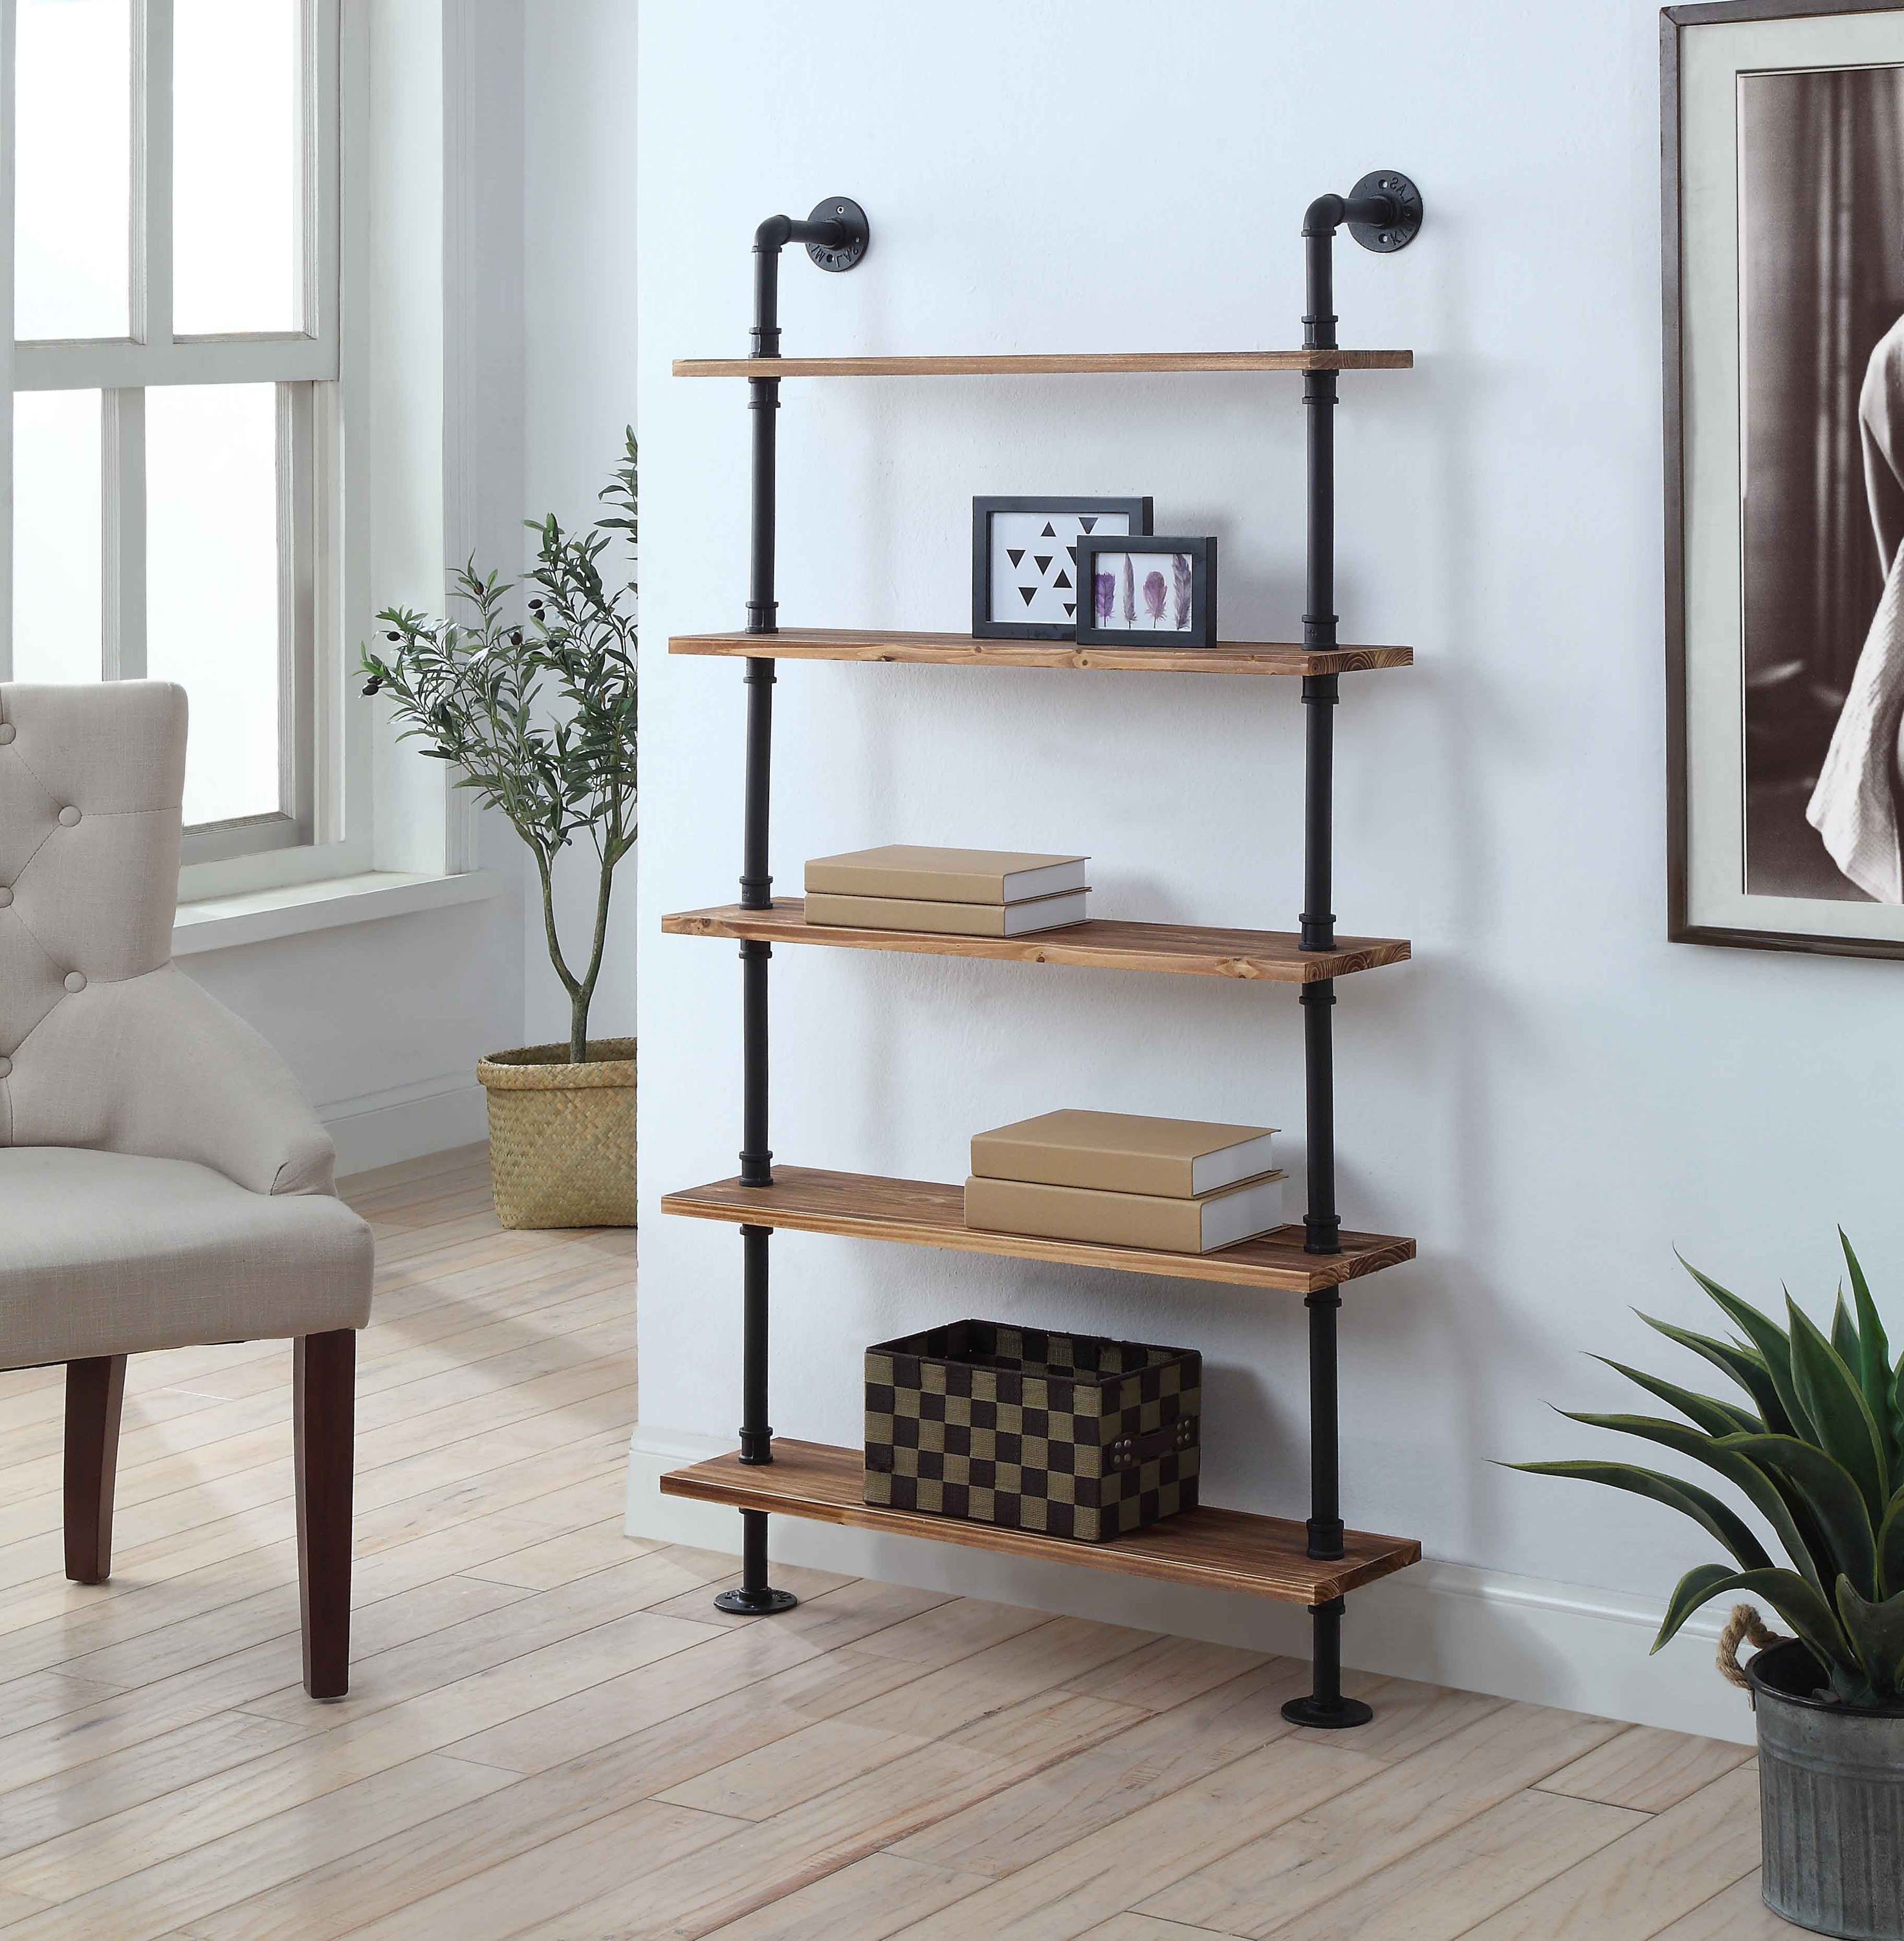 4D Concepts 621150 Anacortes Five Shelf Piping - Black Pipe with Brown Shelves